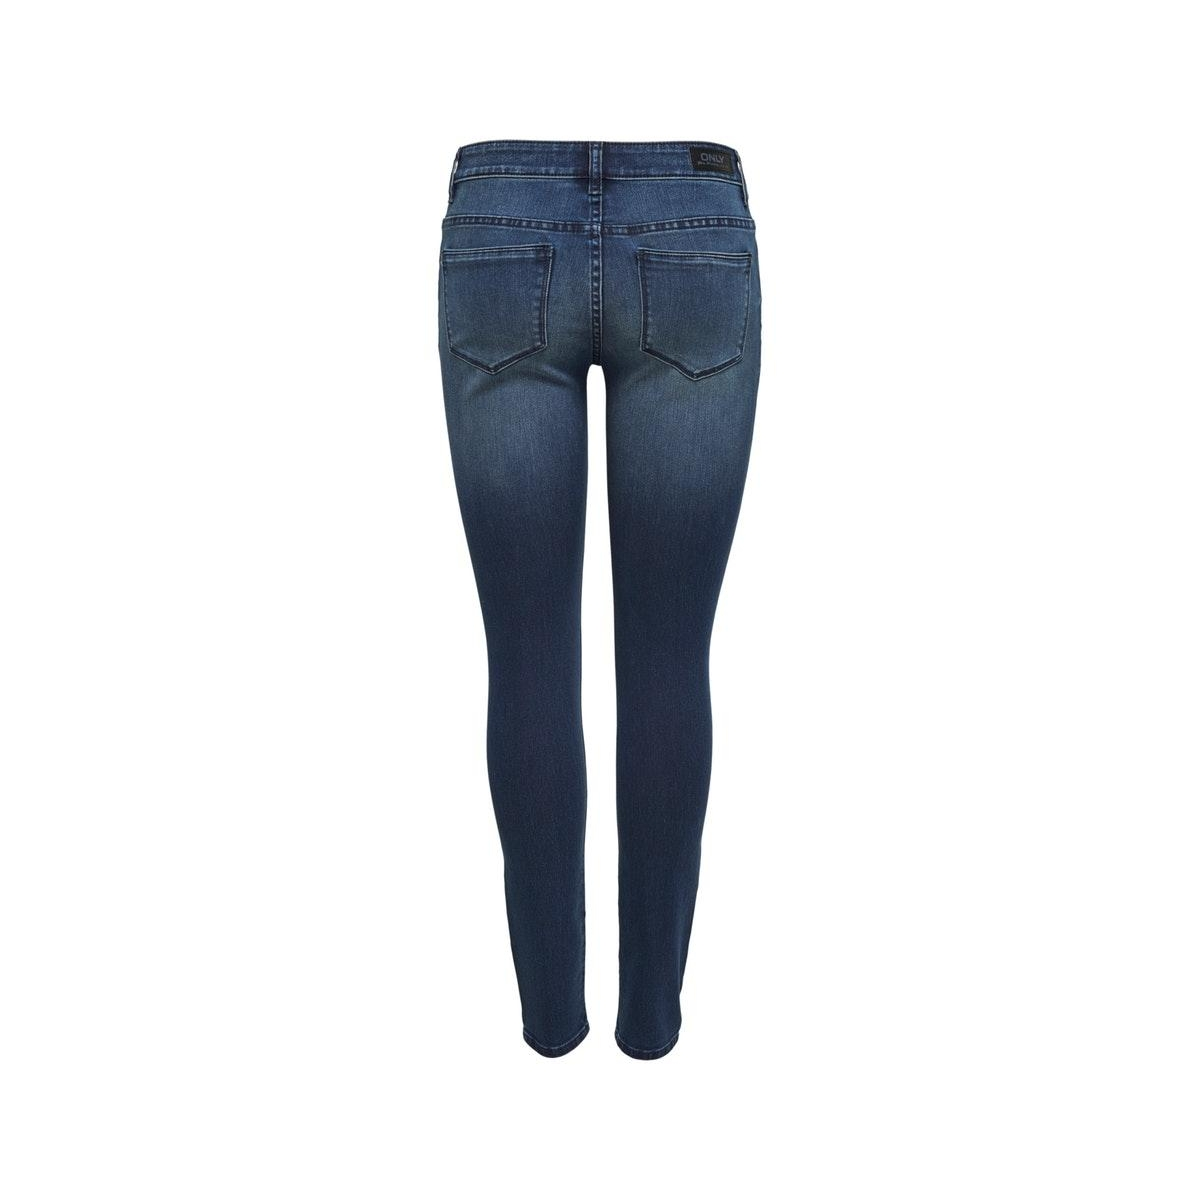 onlcarmen reg sk dnm jeans 15138706 only jeans dark blue denim